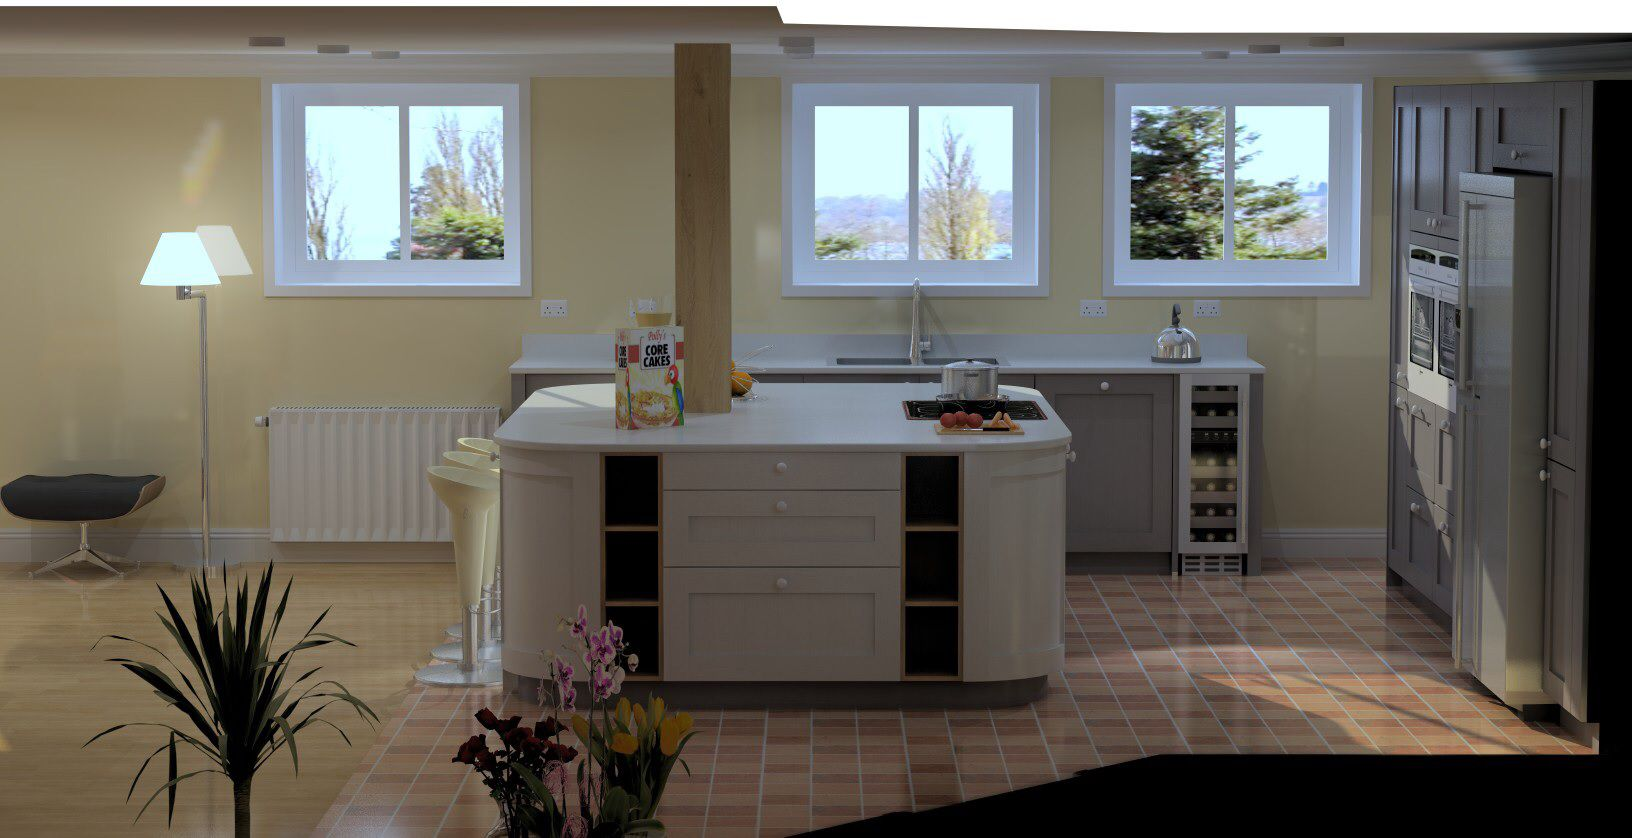 Schuller C Painted Shaker Kitchen Drawn On Compusoft Cad Software Beauteous Kitchen Design Cad Software Design Ideas